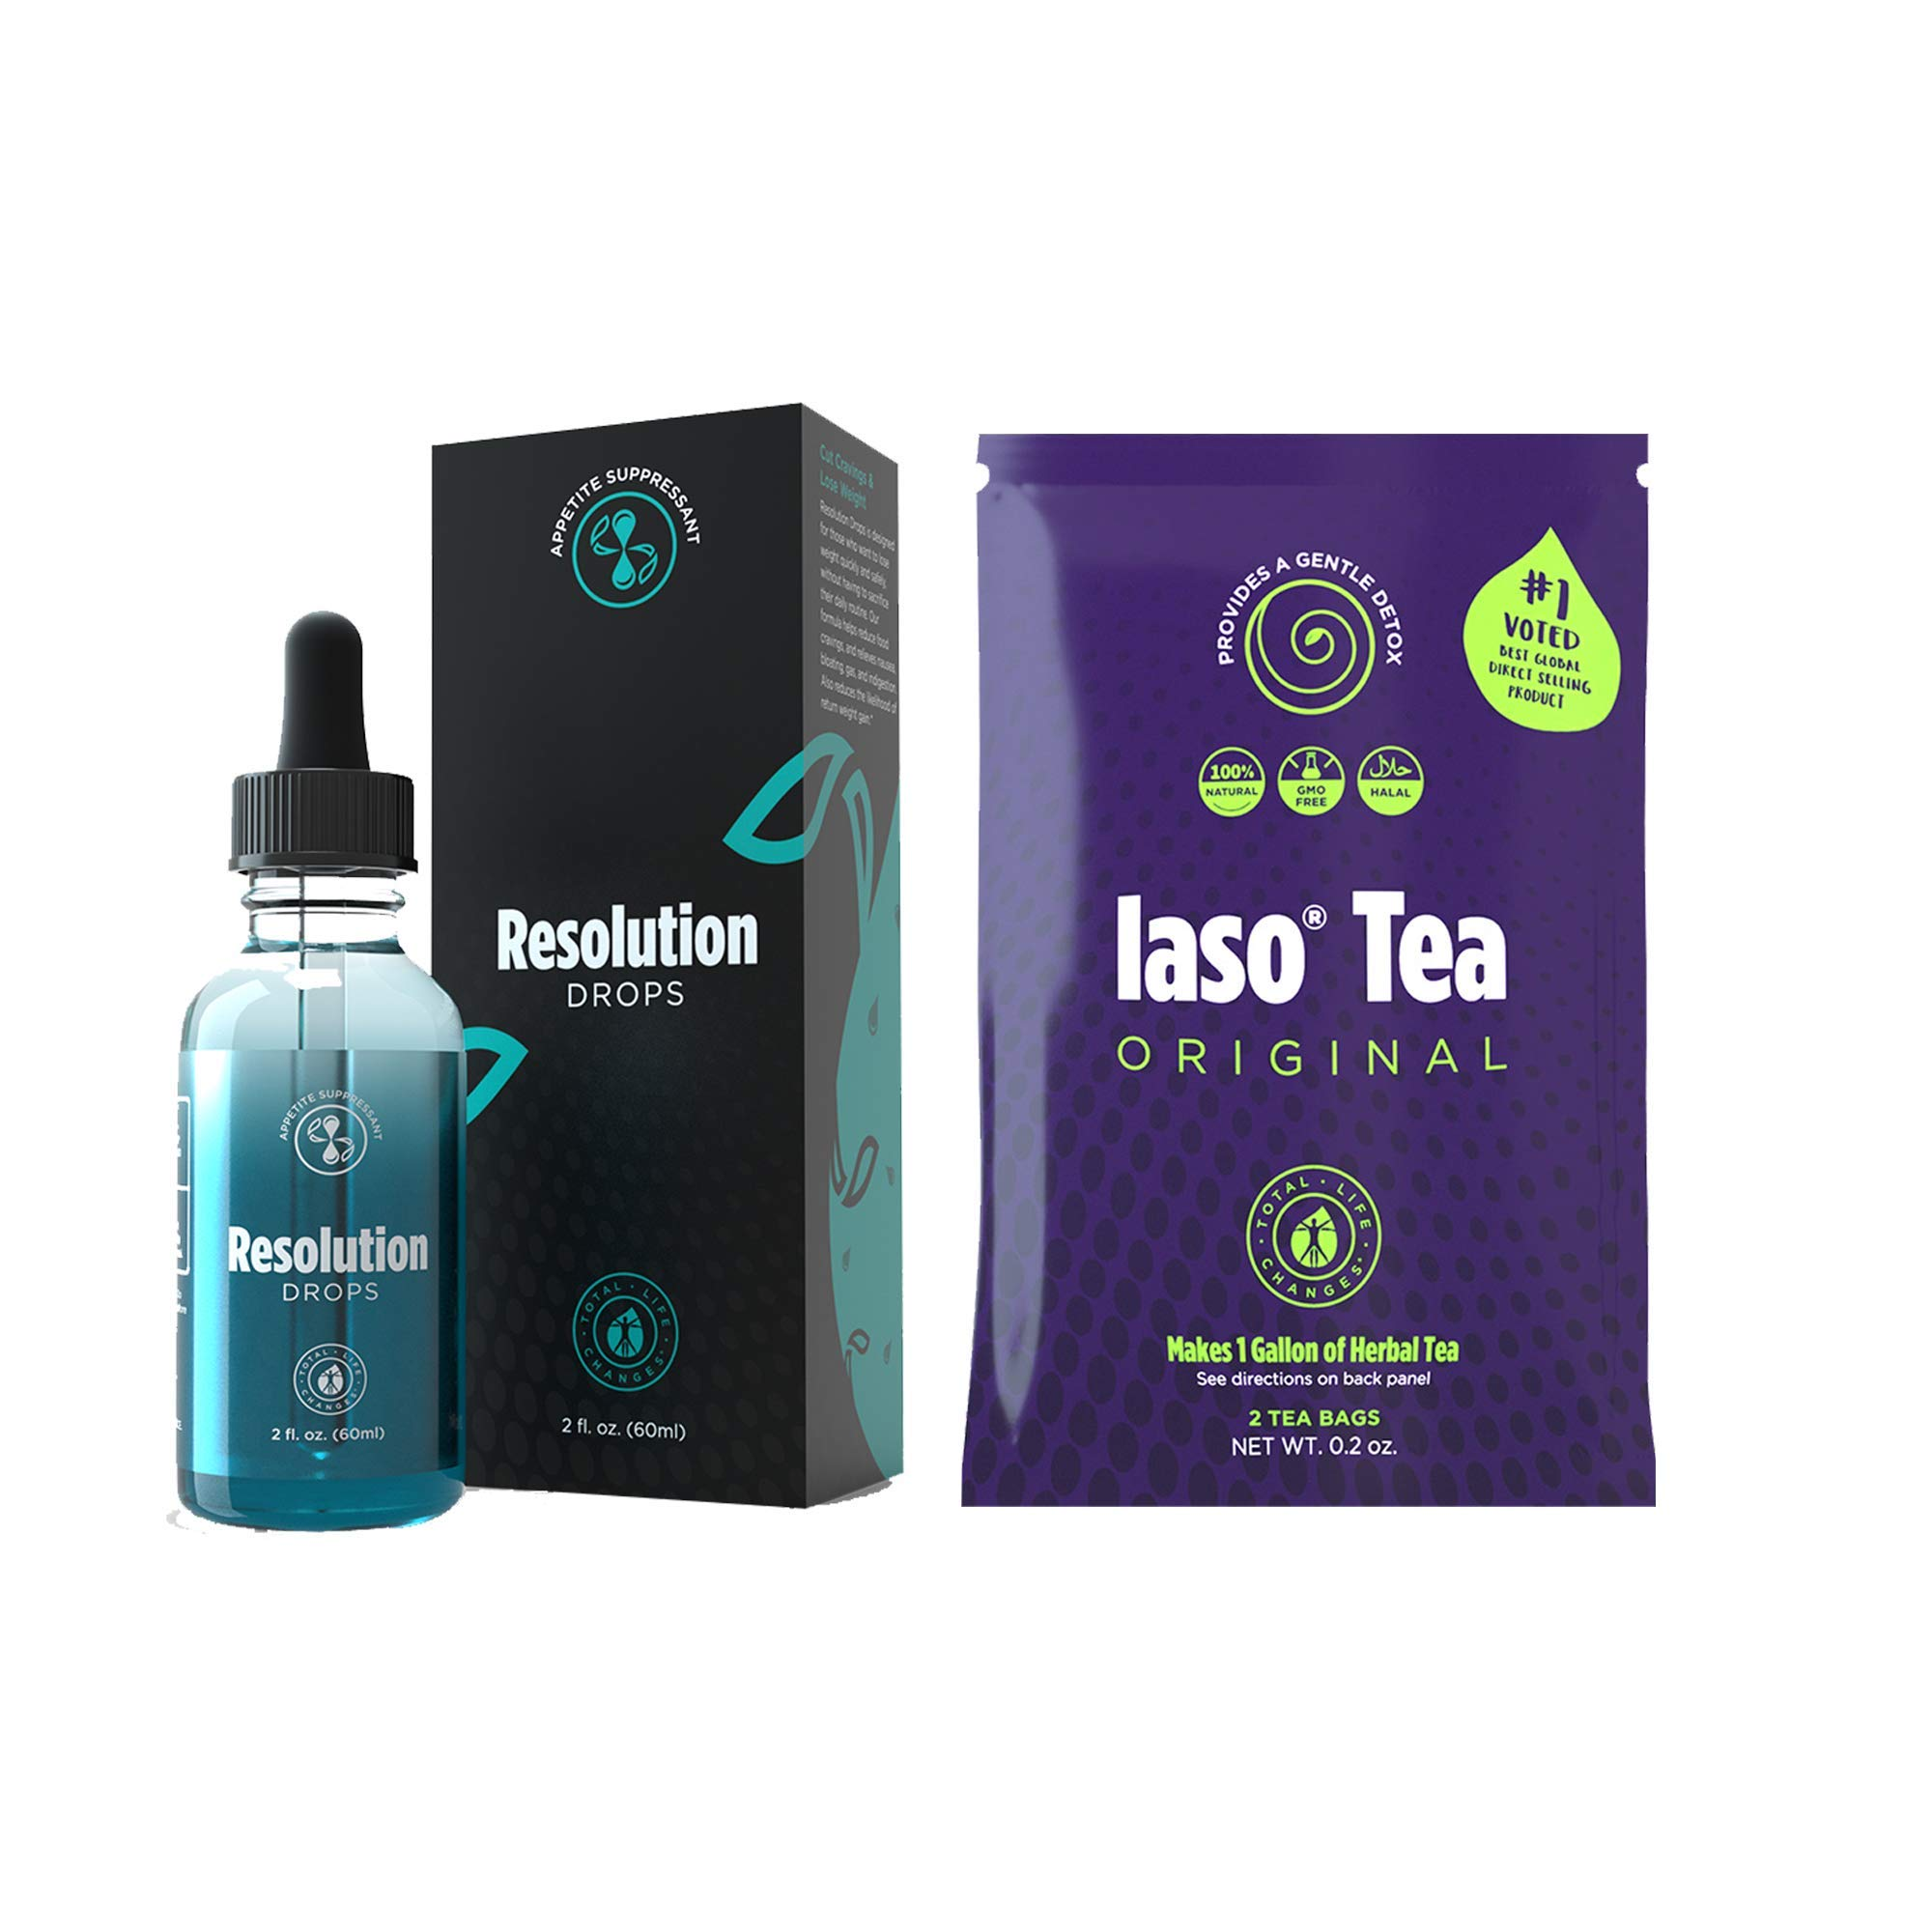 Total Life Changes Resolution Drops with 1 week supply of laso tea *Packaging May Vary Between Old & New in 2019